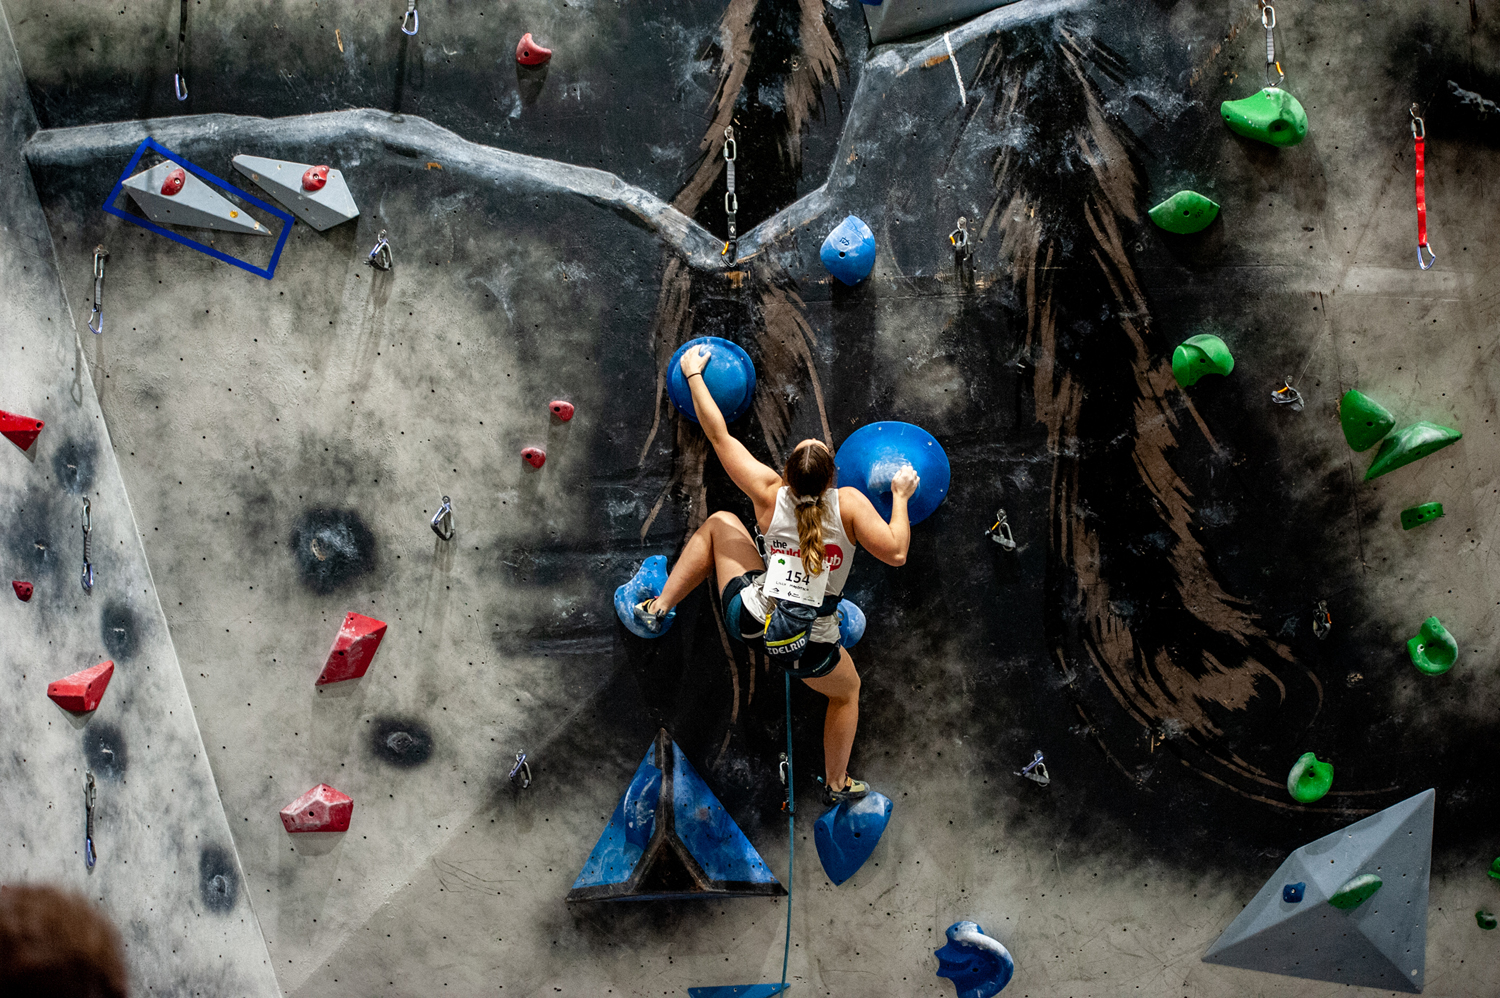 Climbing Rocks Professional Climbing Photography Competition Indoor Climbing (4)